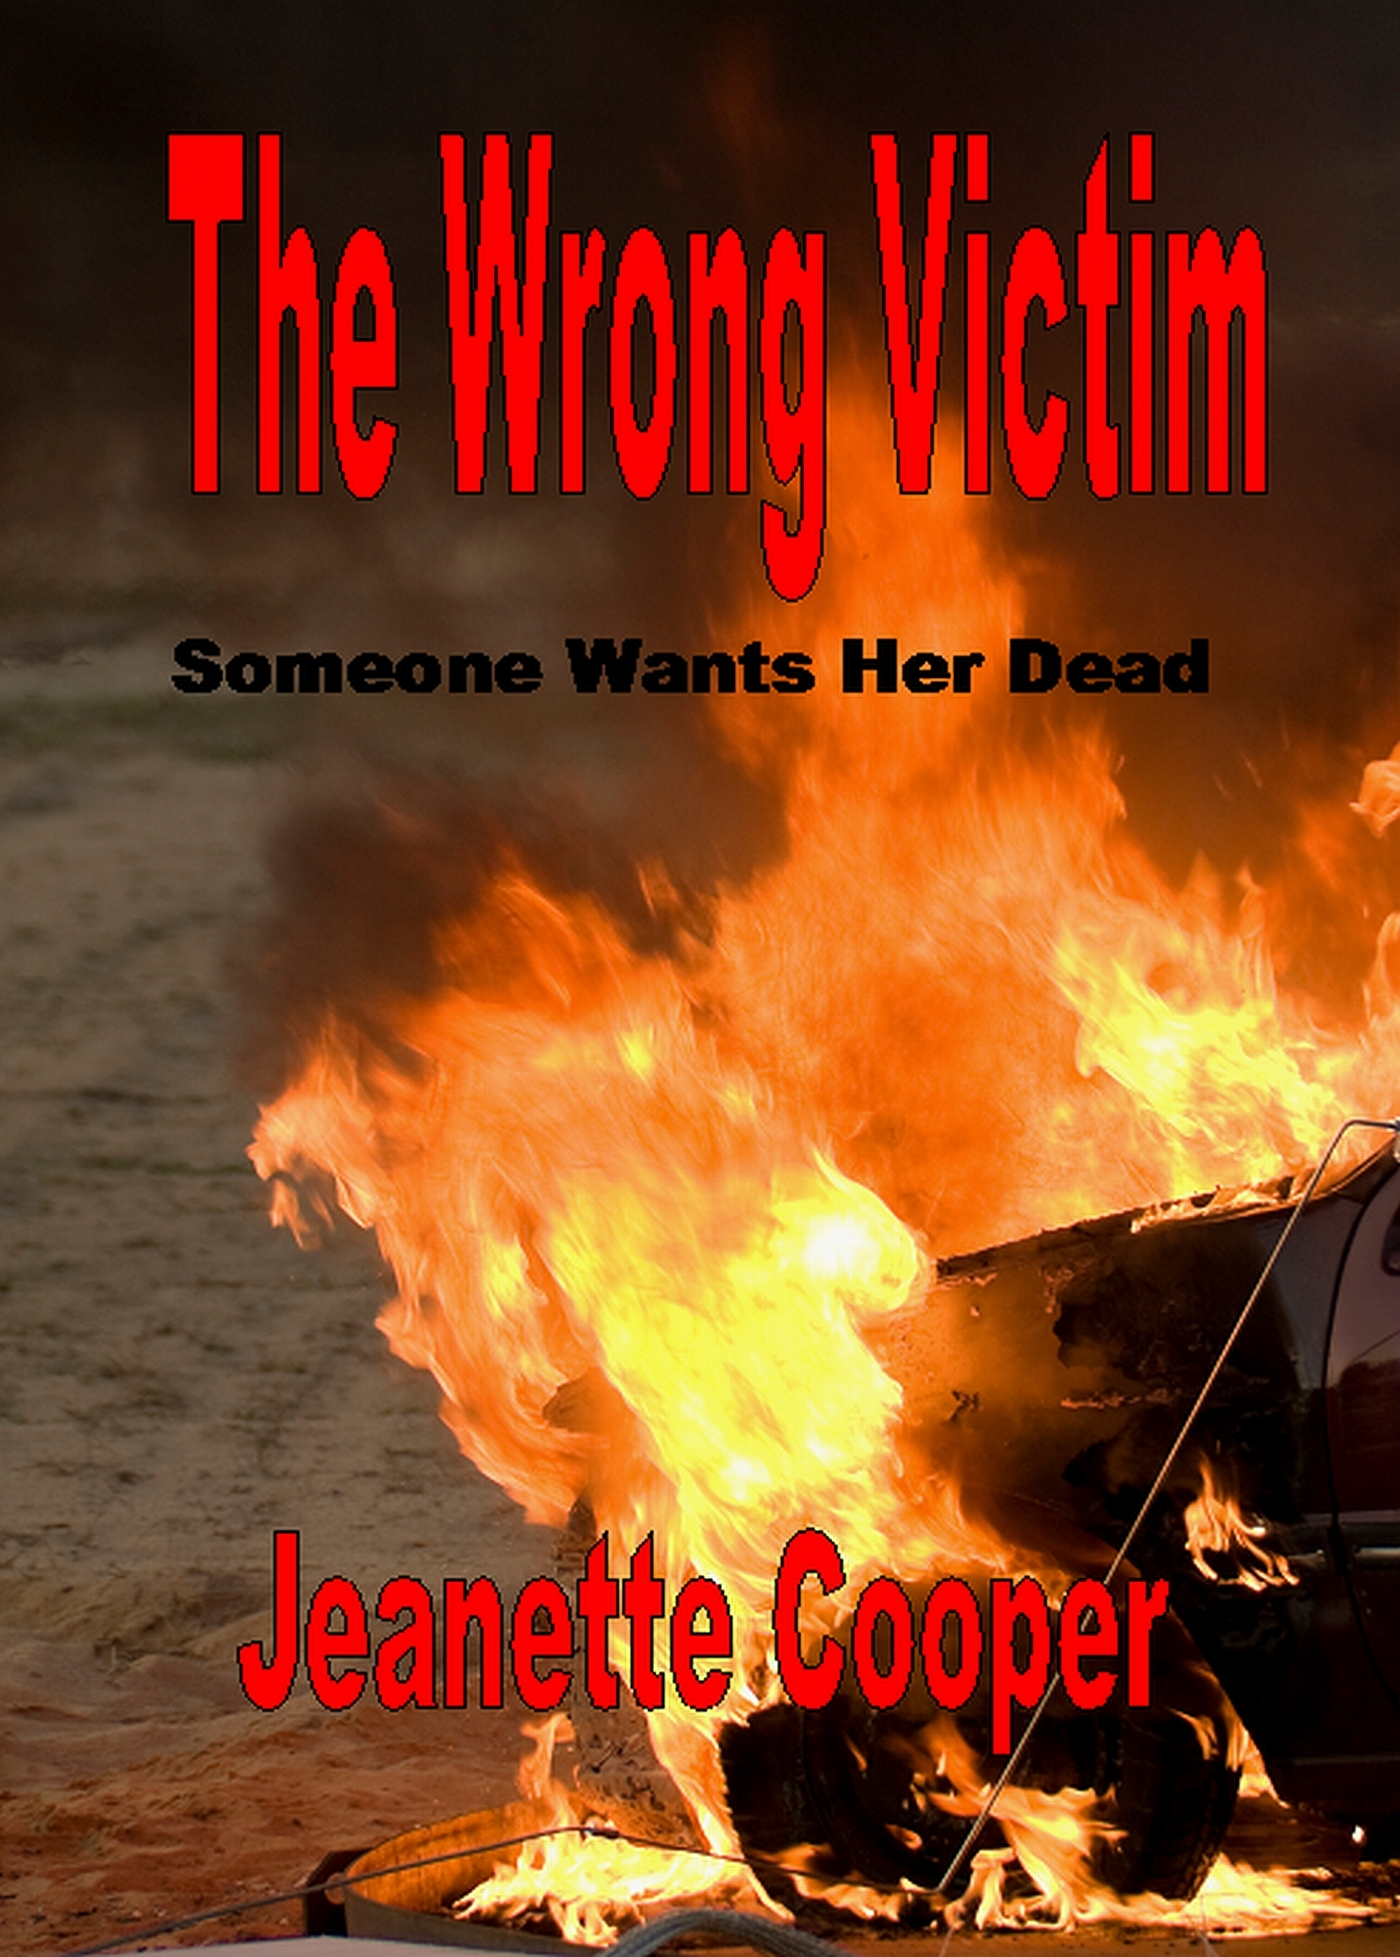 The Wrong Victim